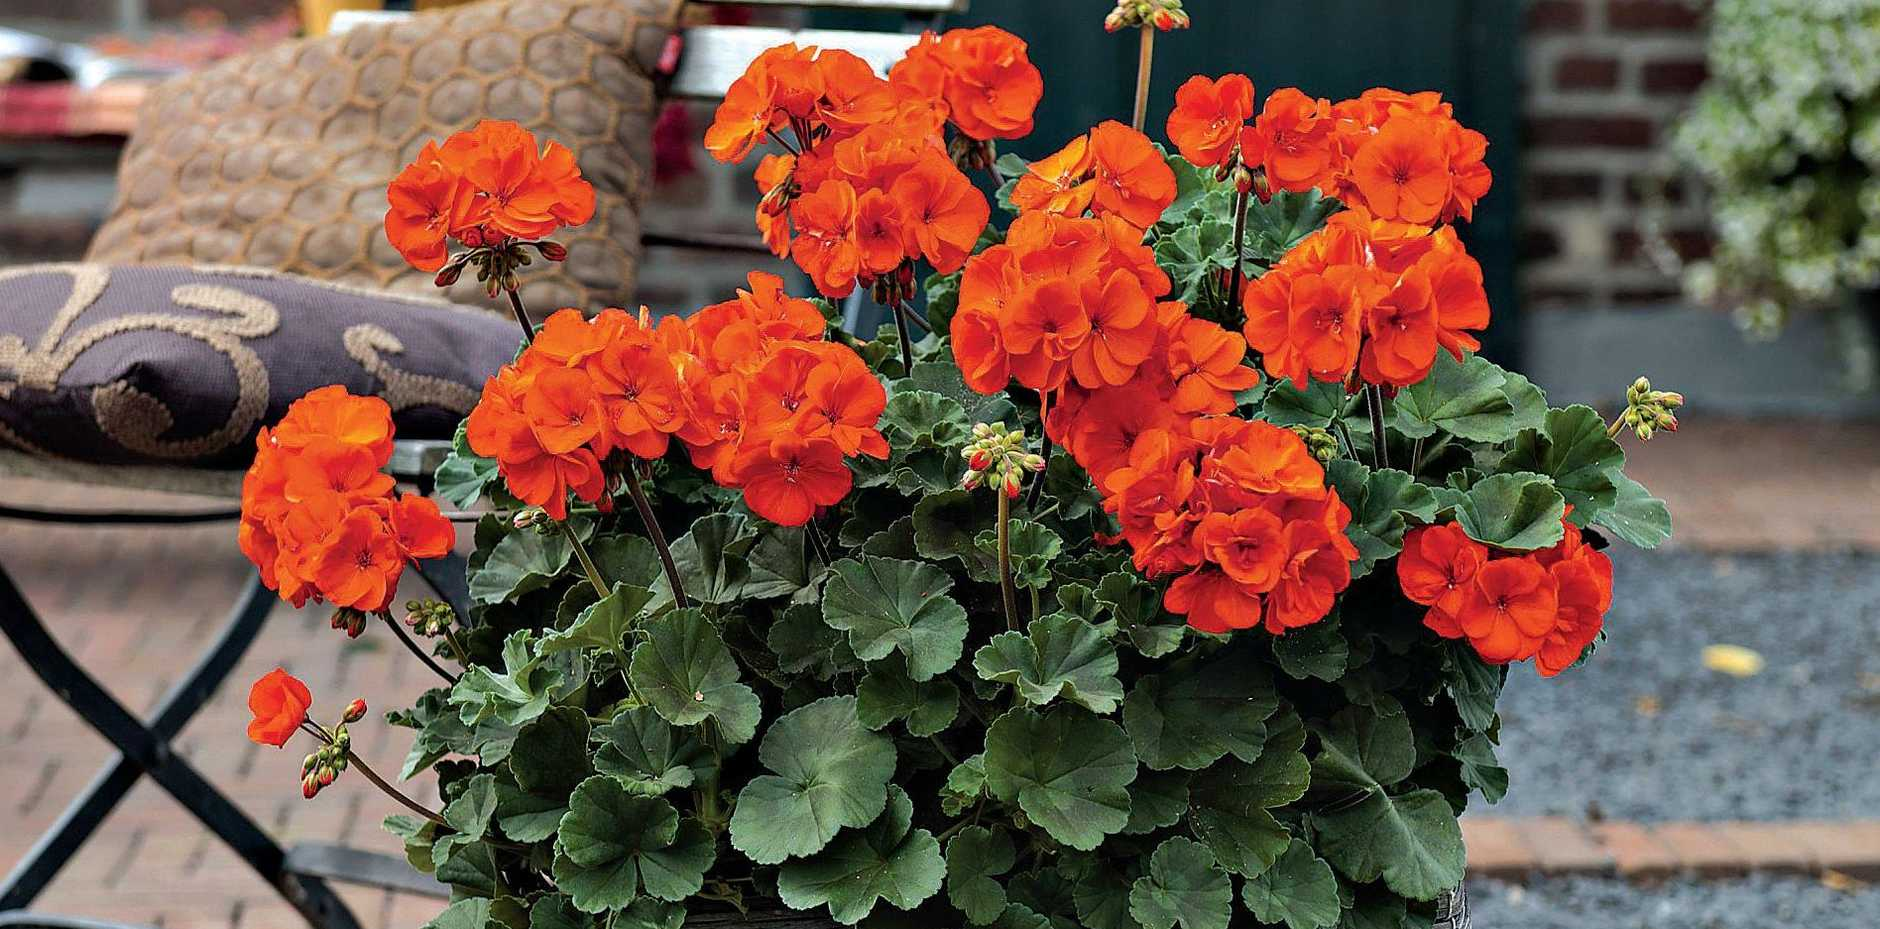 Geraniums, like Oh So Orange, provide colour for much of the year.